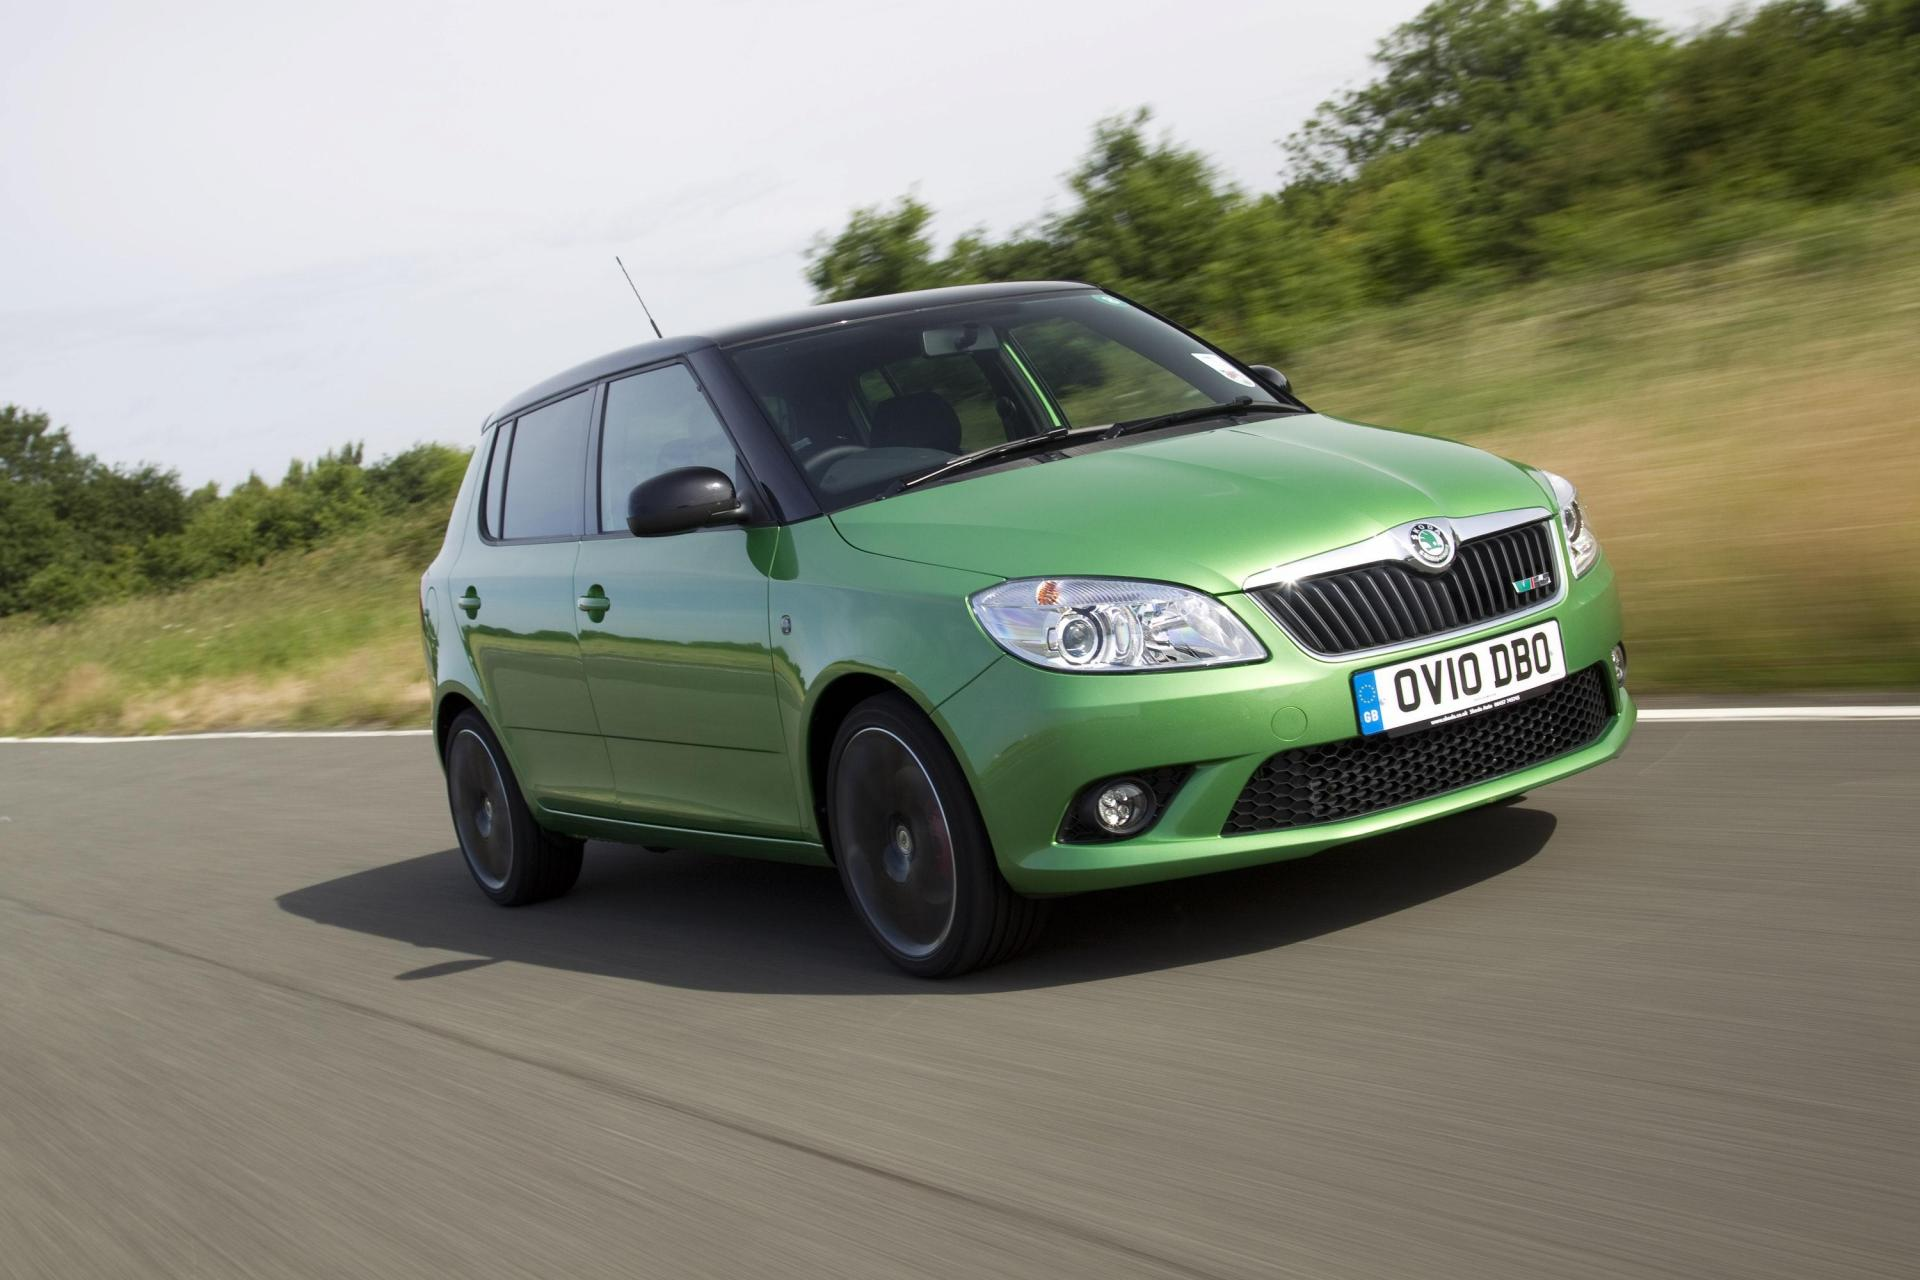 The Fabia vRS pioneered 'twin-charging' technology for hot hatches. (Skoda)